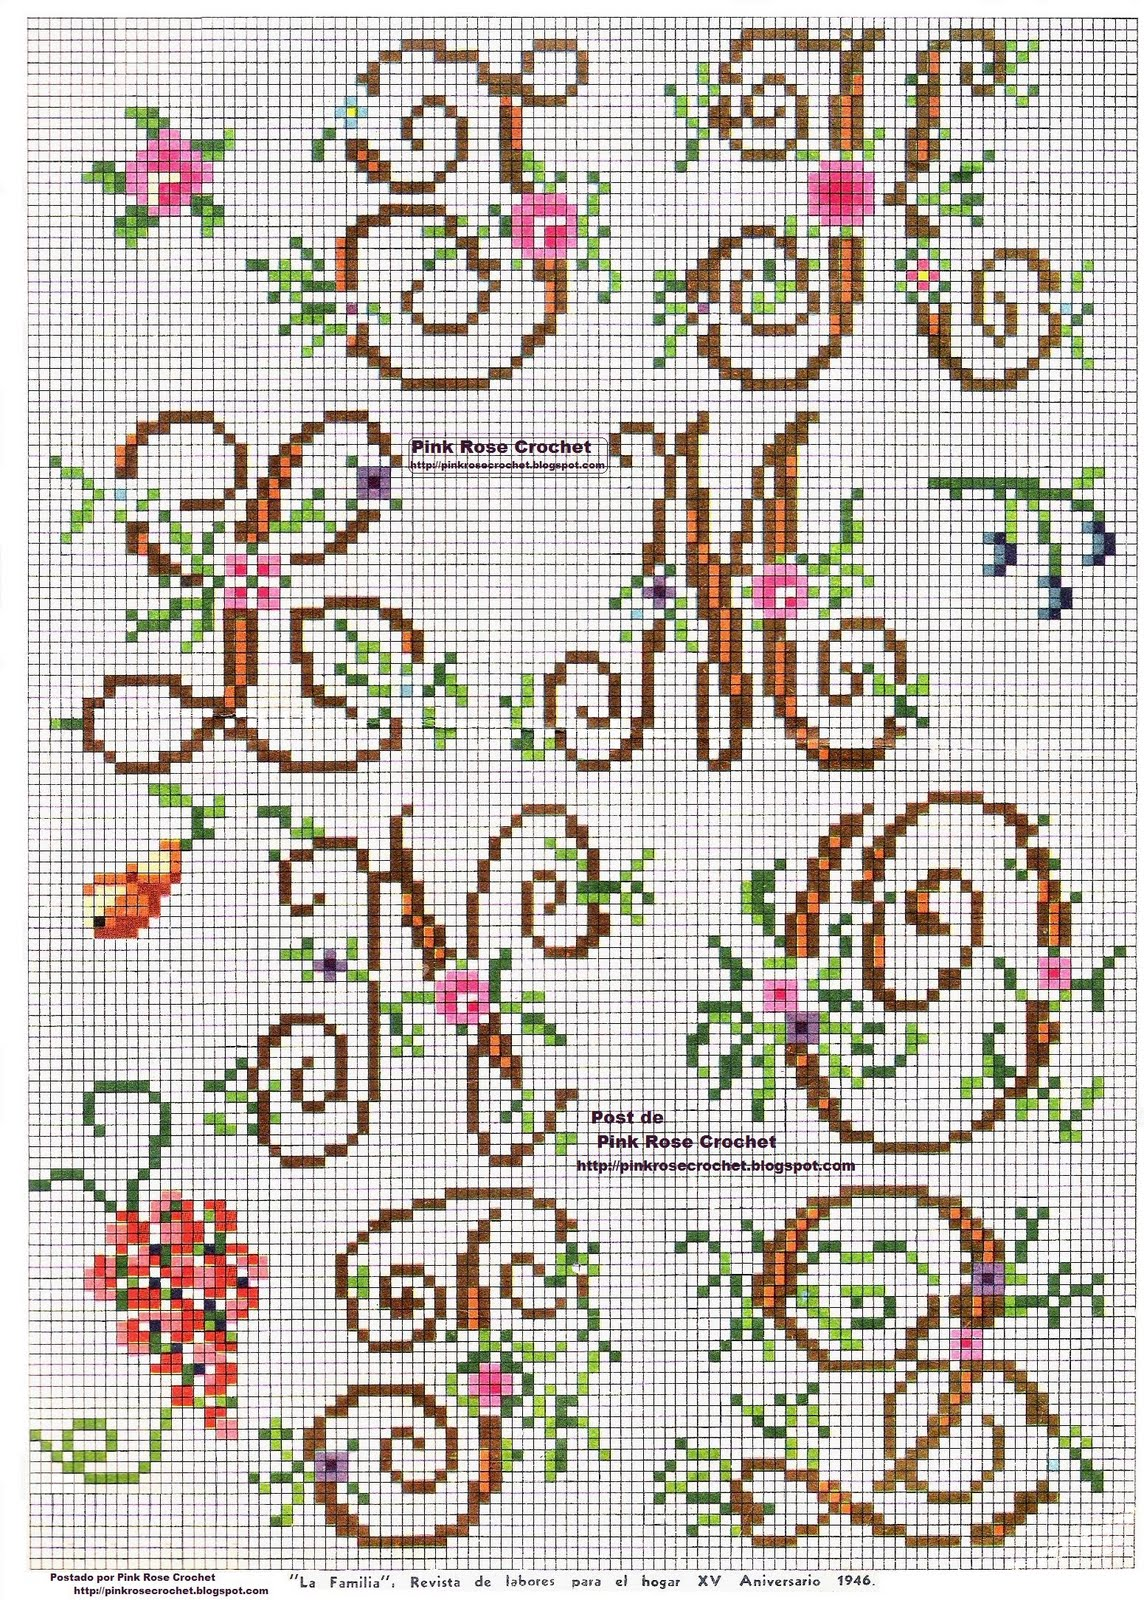 Embroidery Alphabet Designs To Download